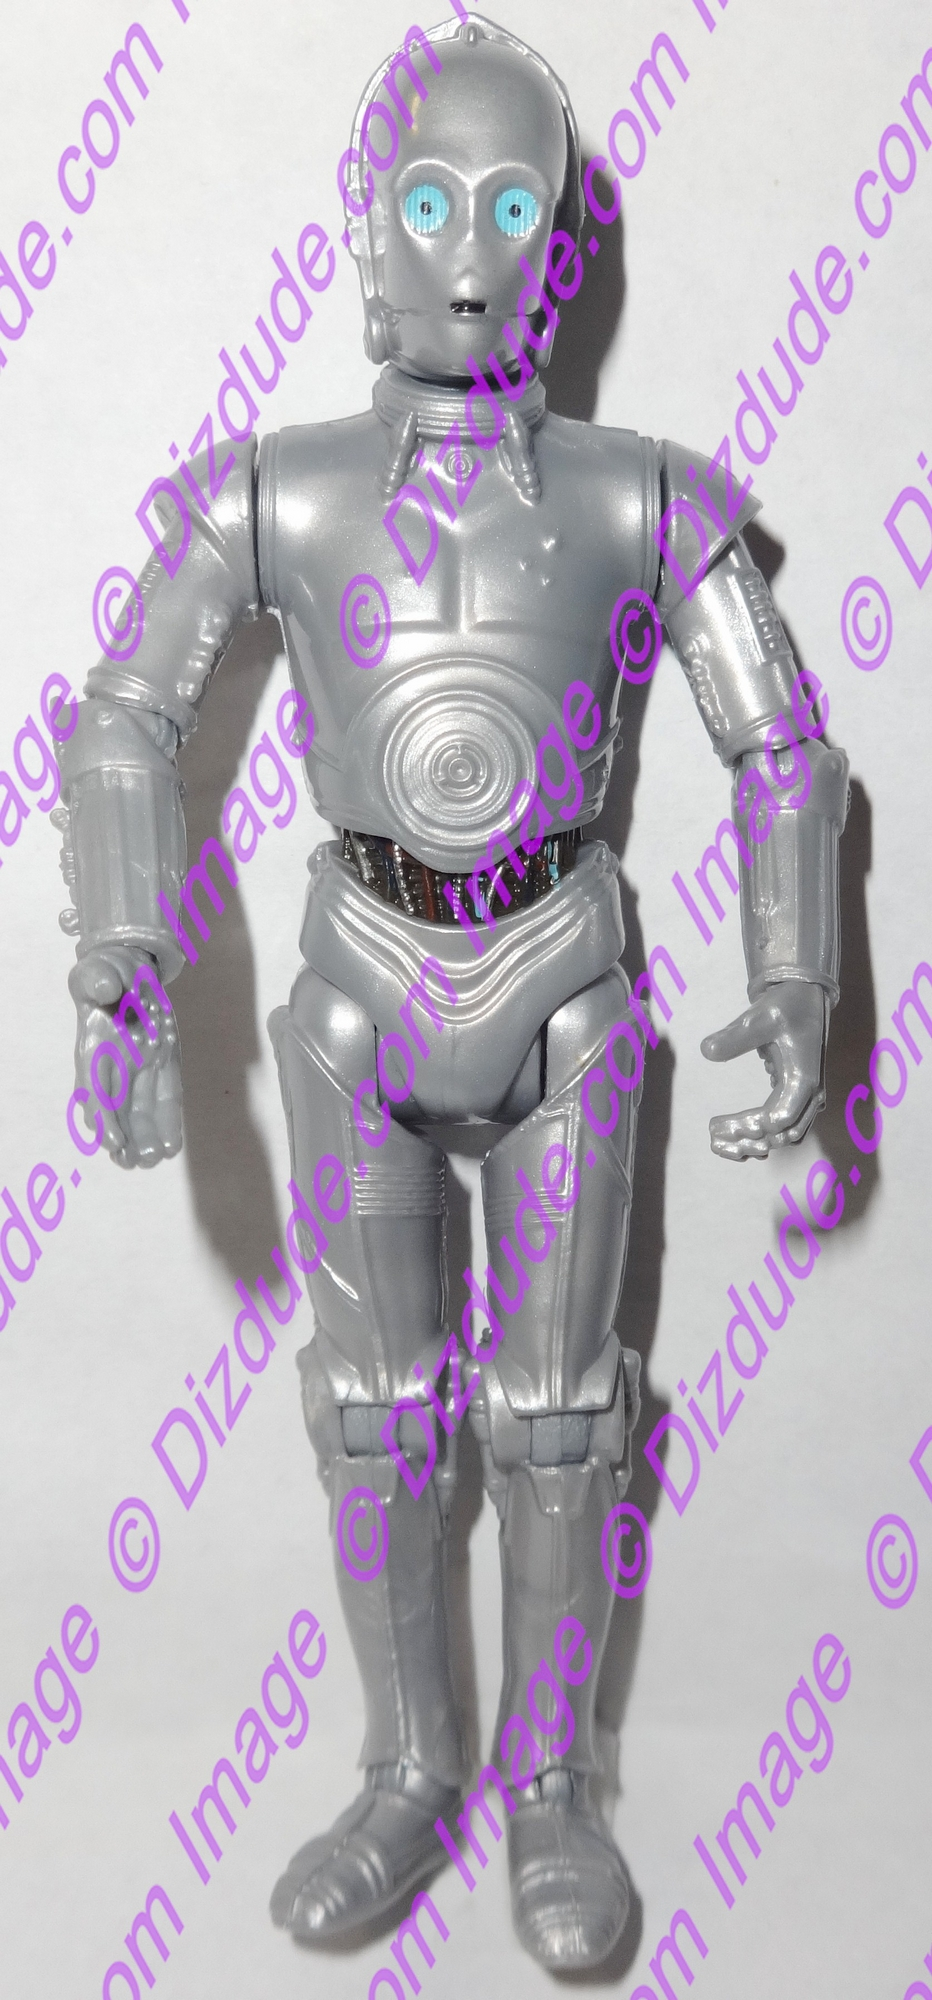 Silver 3PO Protocol Droid from Disney Star Wars Build-A-Droid Factory